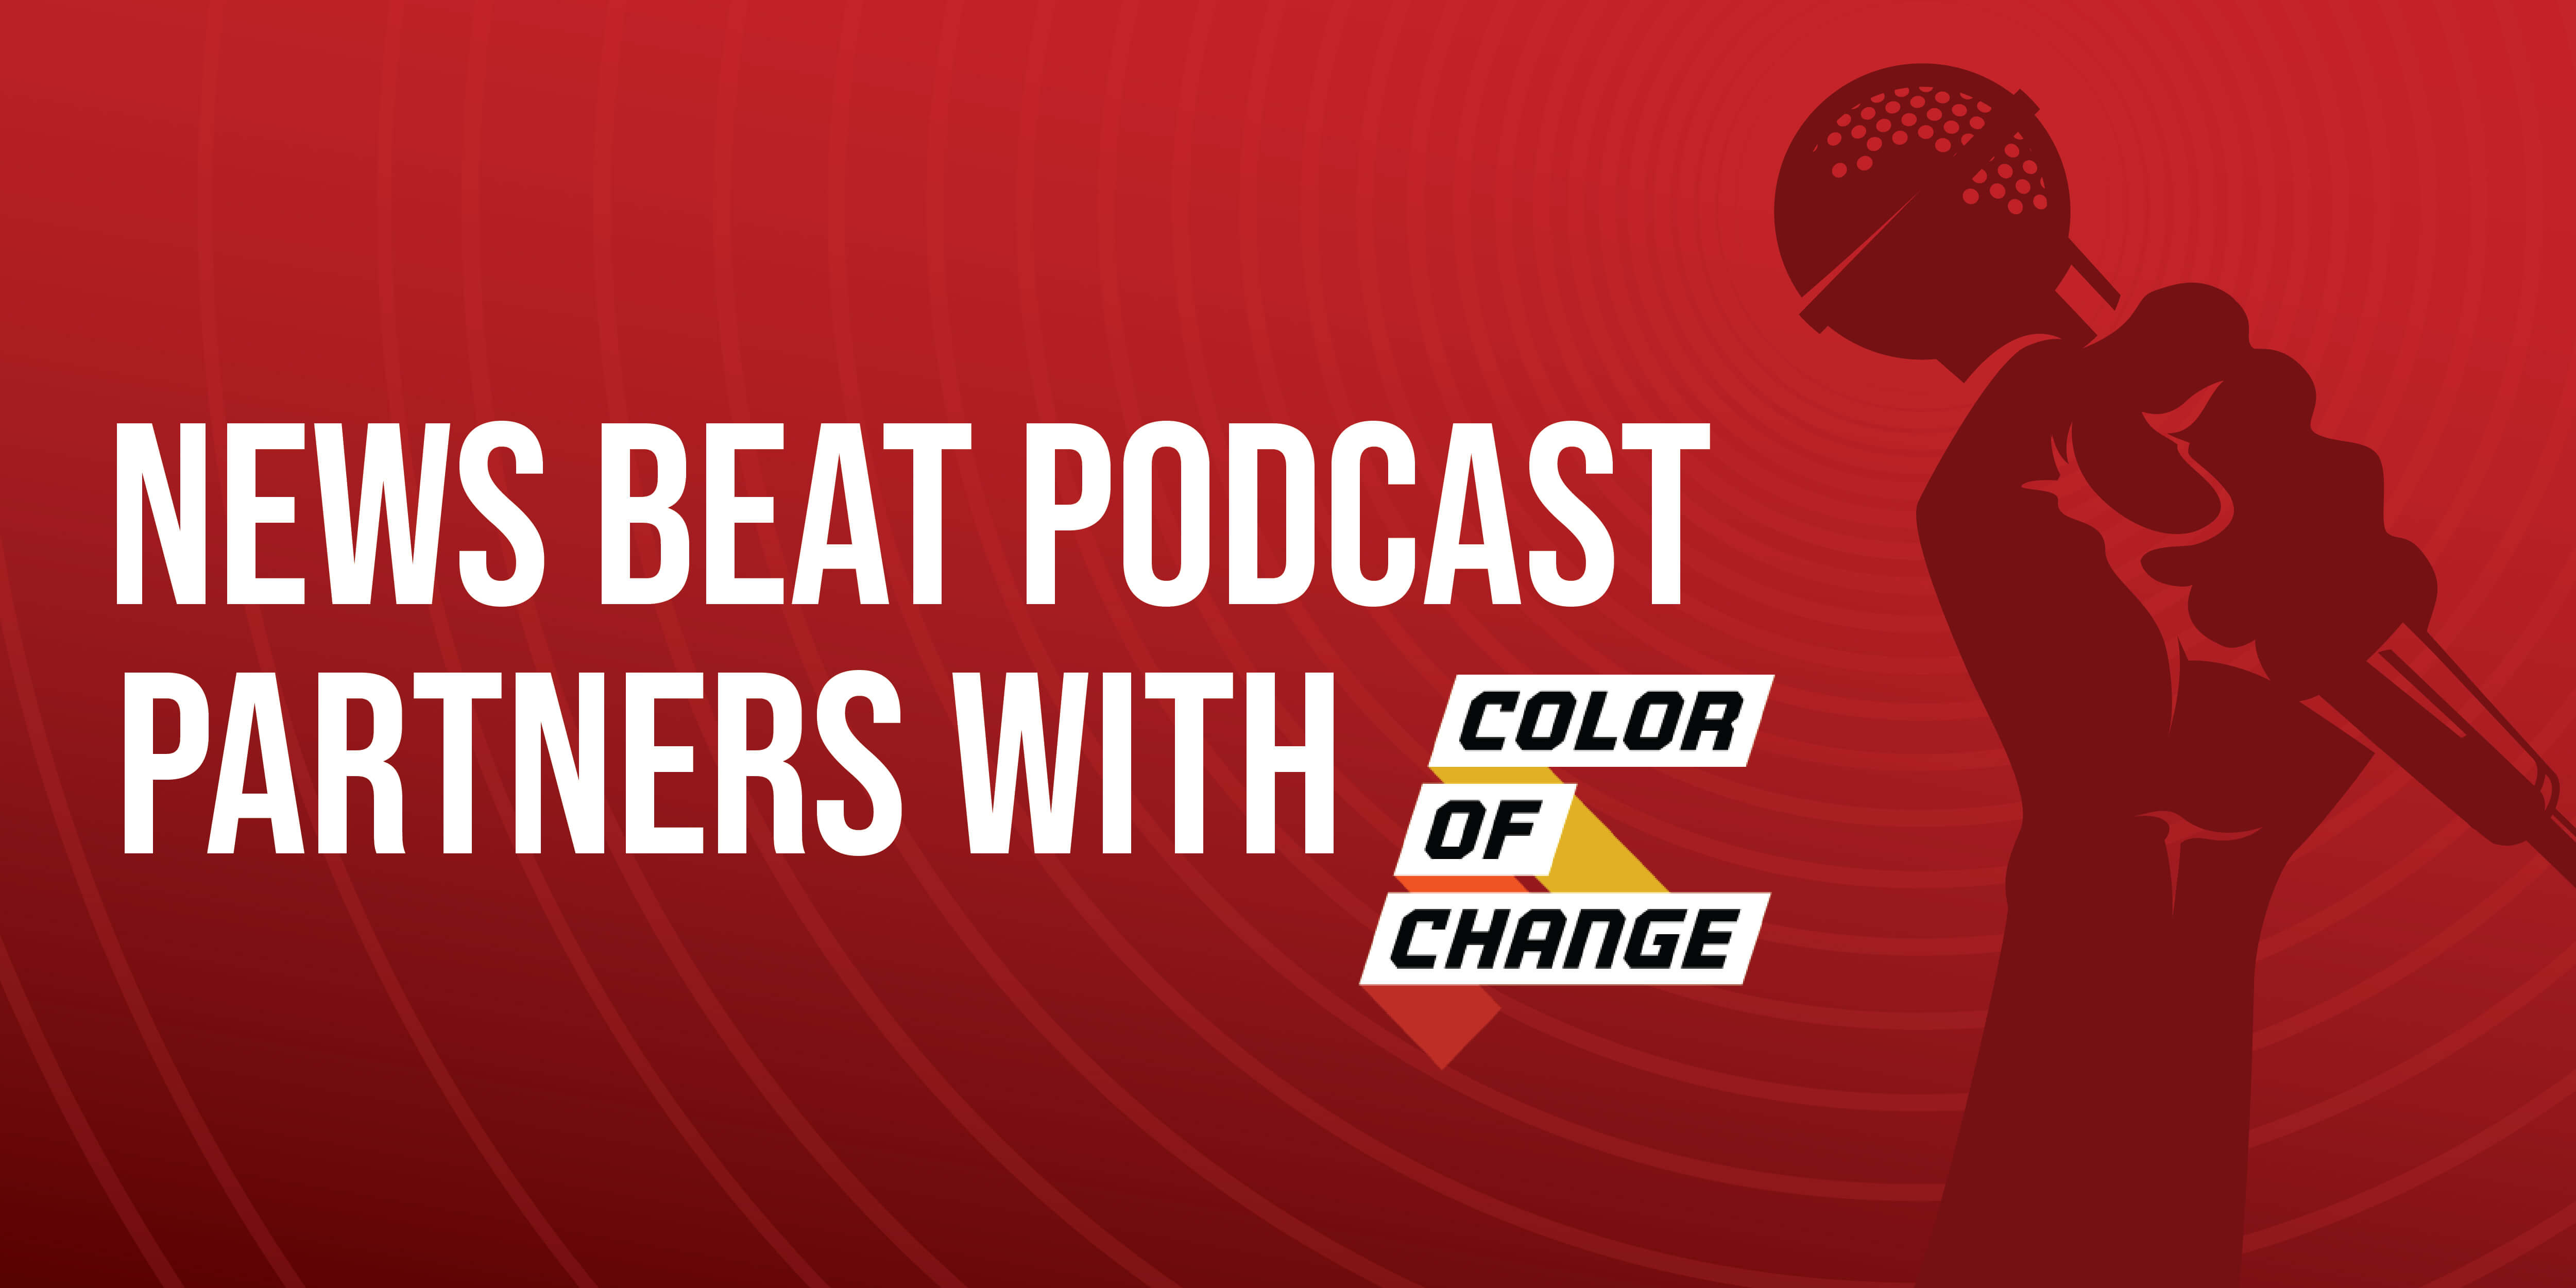 Text that says News Beat Podcast Partners With Color Of Change on a red background with graphic of a hand holding a microphone